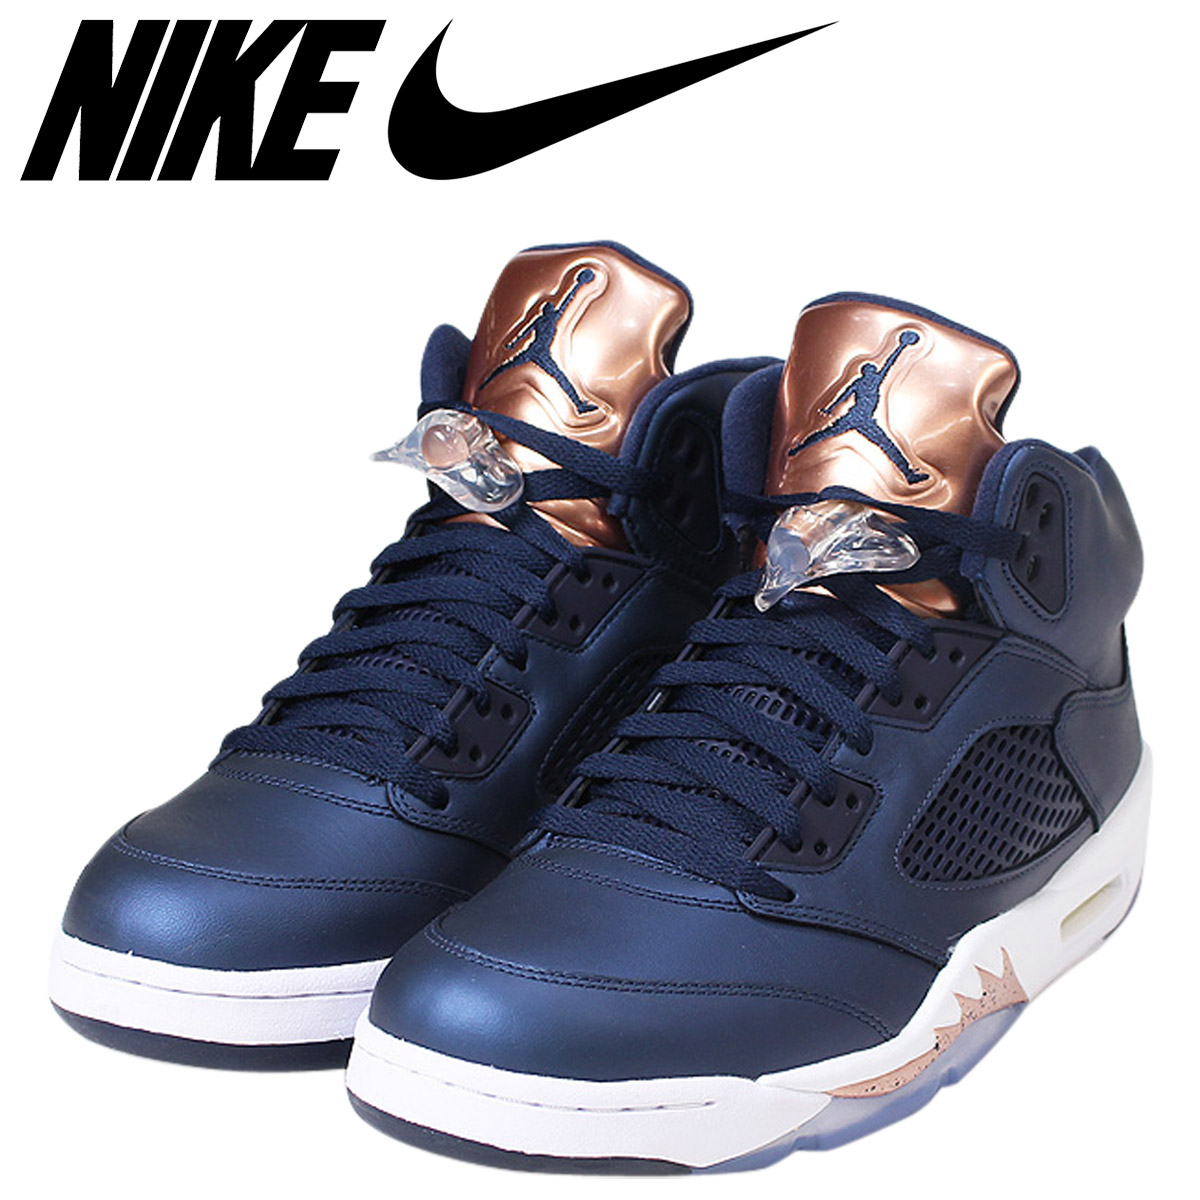 purchase cheap 7702c 705fc NIKE Nike Air Jordan 5 nostalgic sneakers AIR JORDAN 5 RETRO BRONZE men  136,027-416 ブロンズオブシディアン